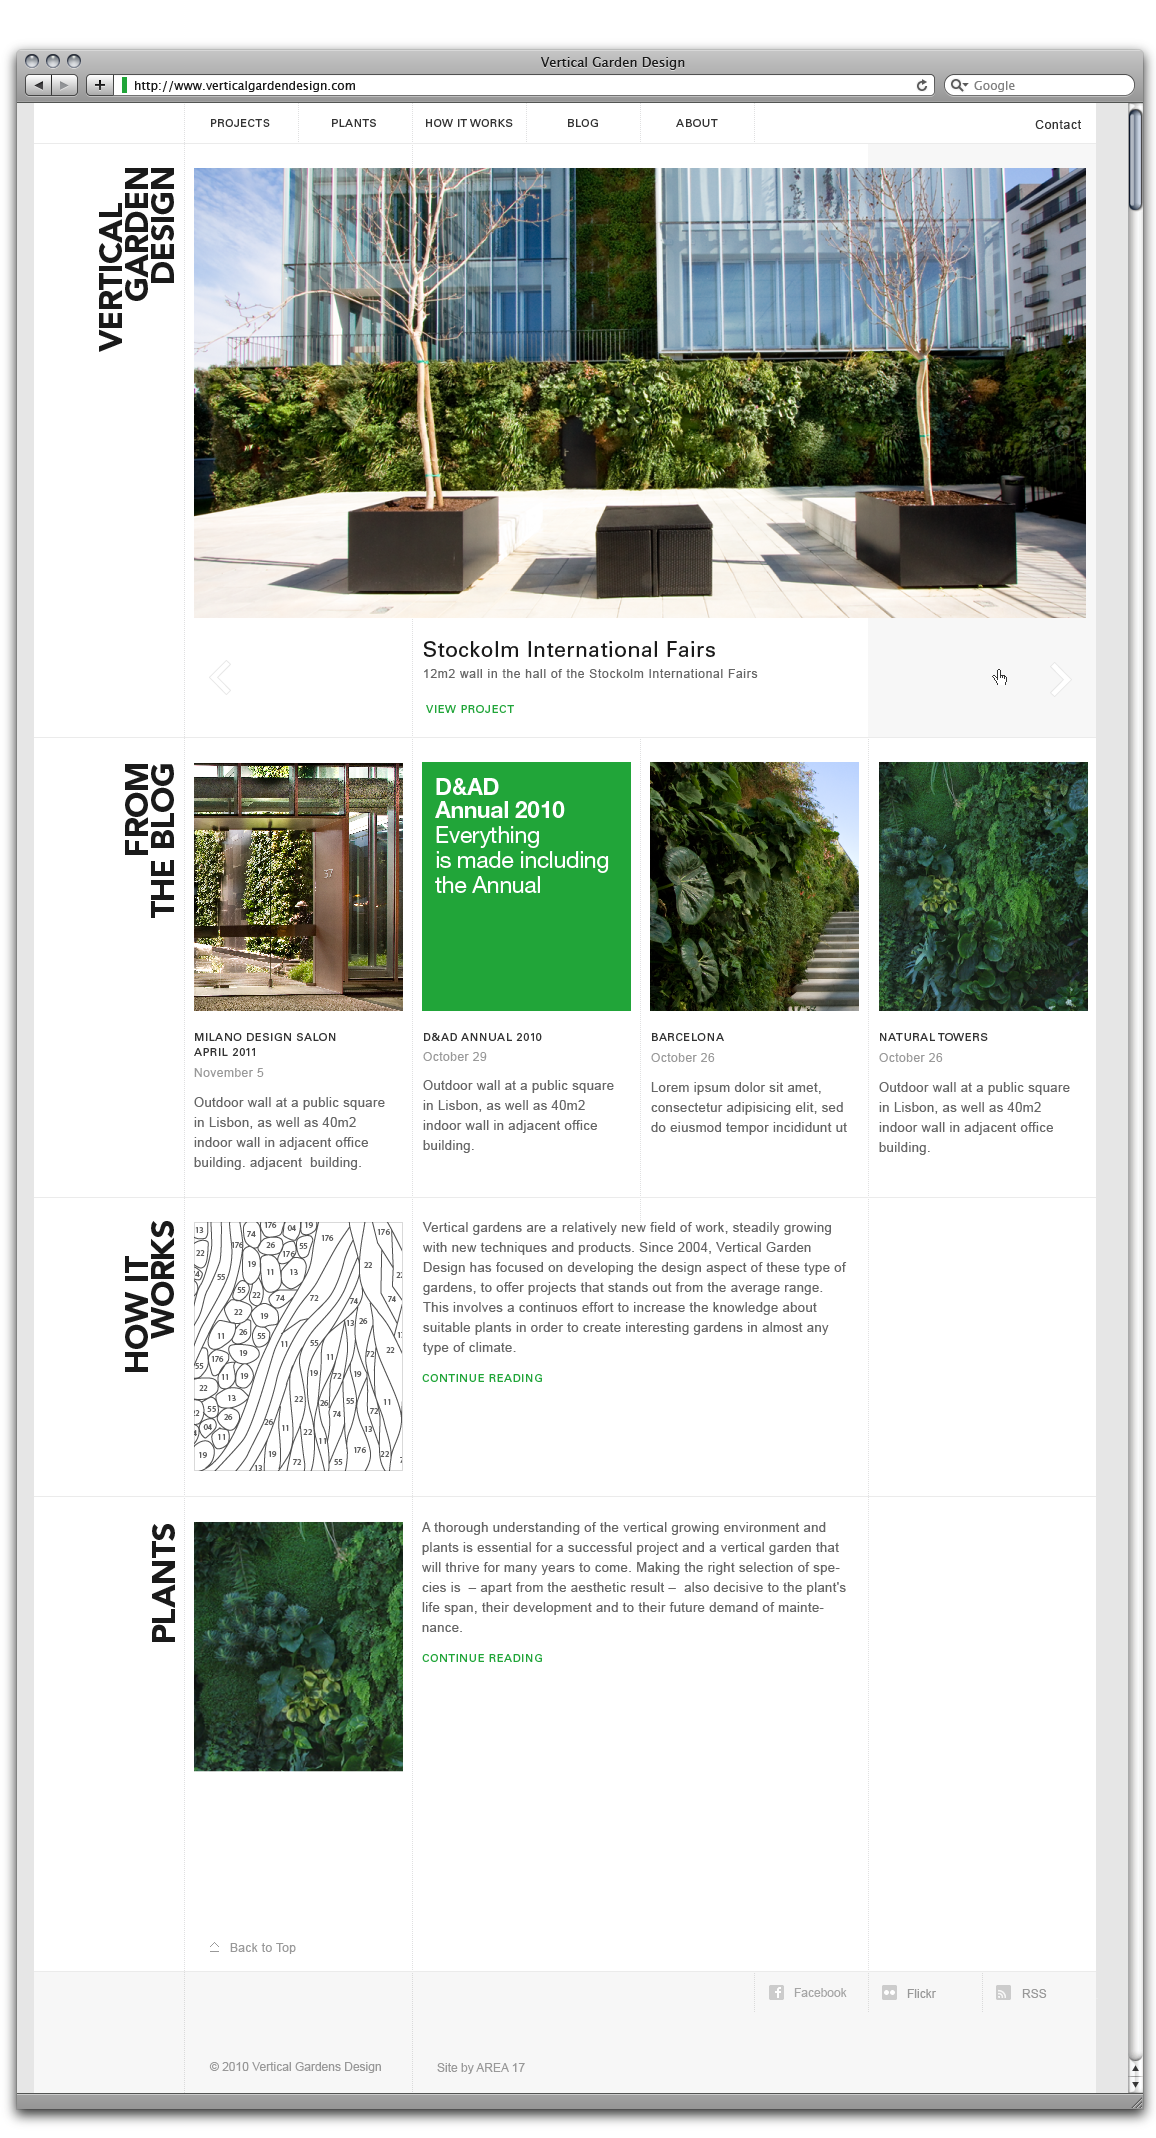 Vertical_garden_design_web0_original